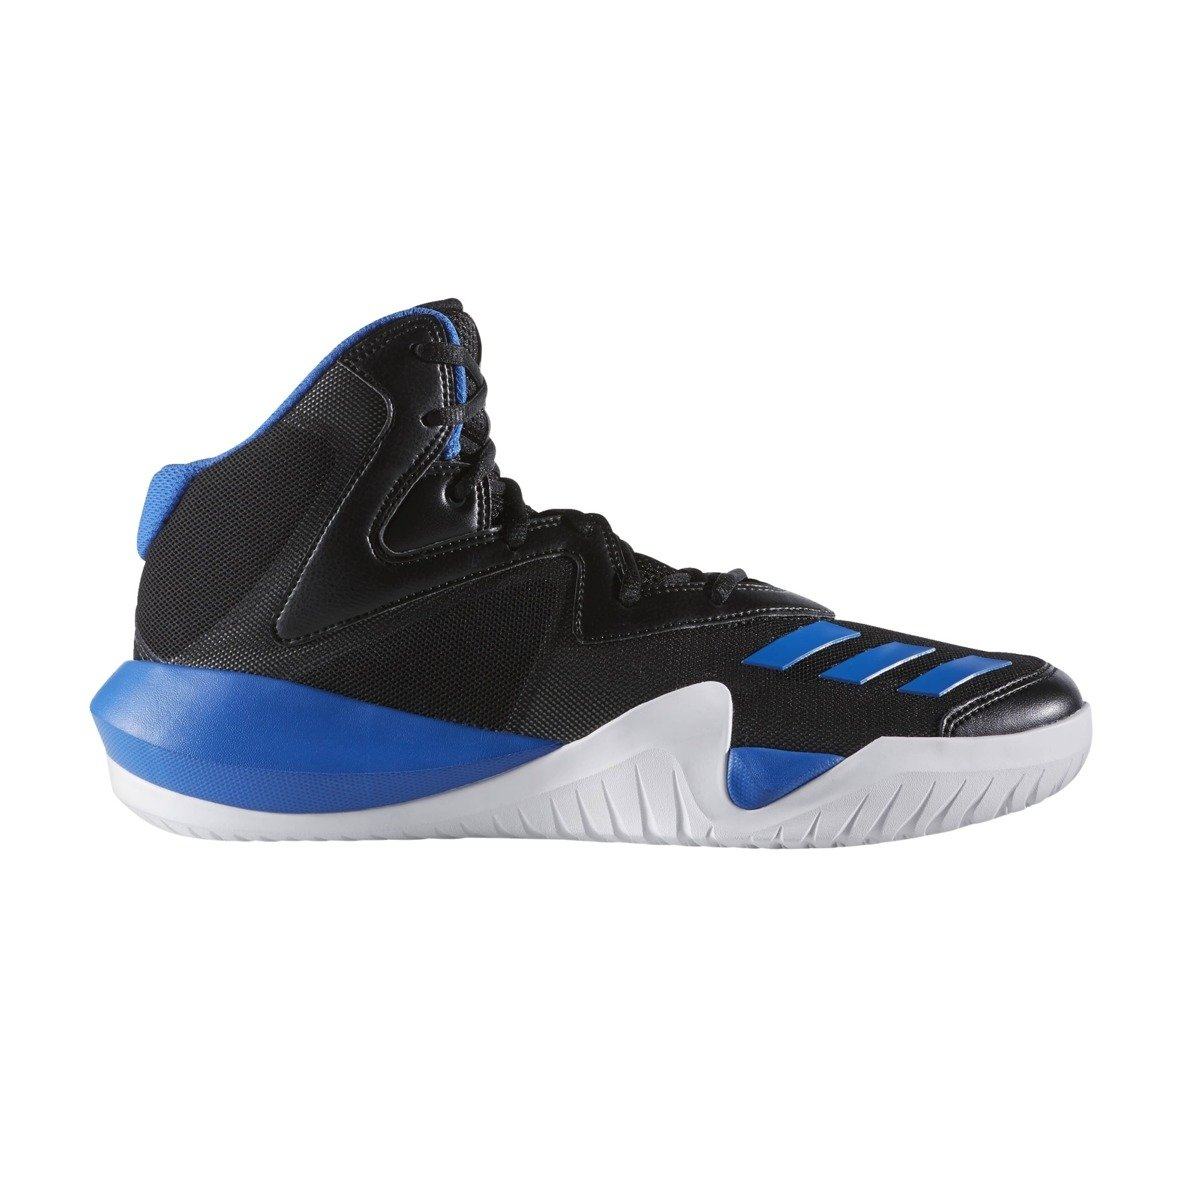 Adidas Grizzlies Shoes